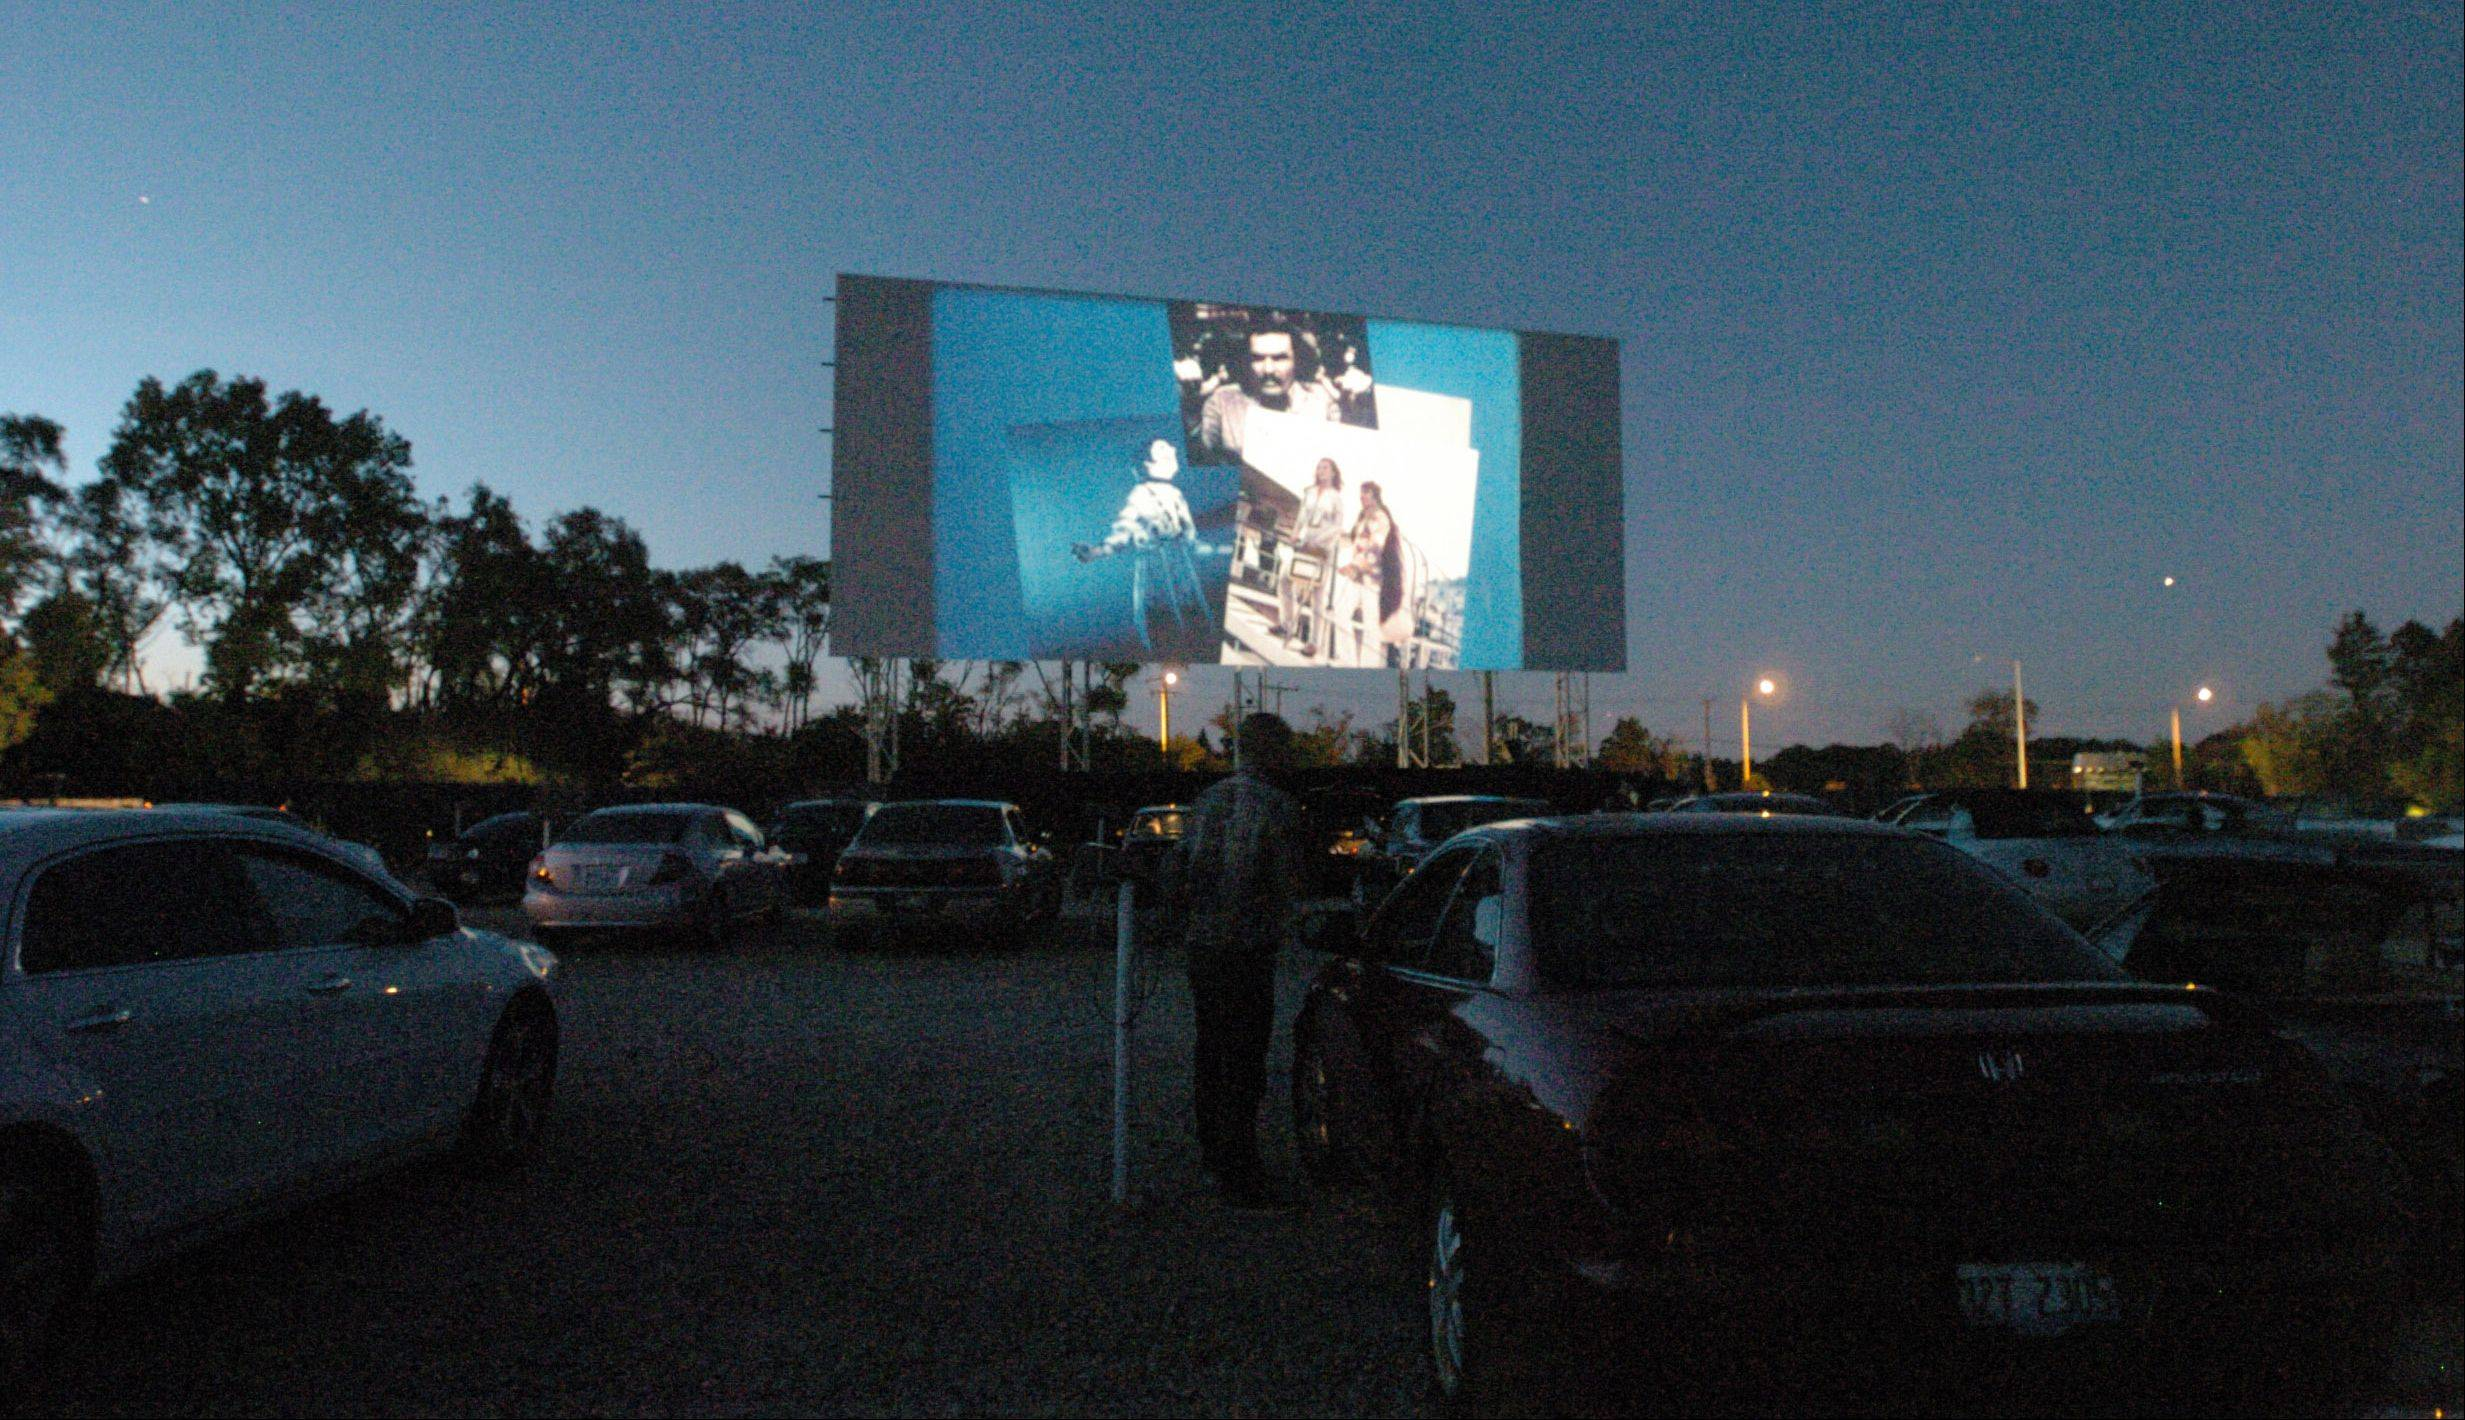 A double-feature begins at the Cascade Drive-In Theater in West Chicago.